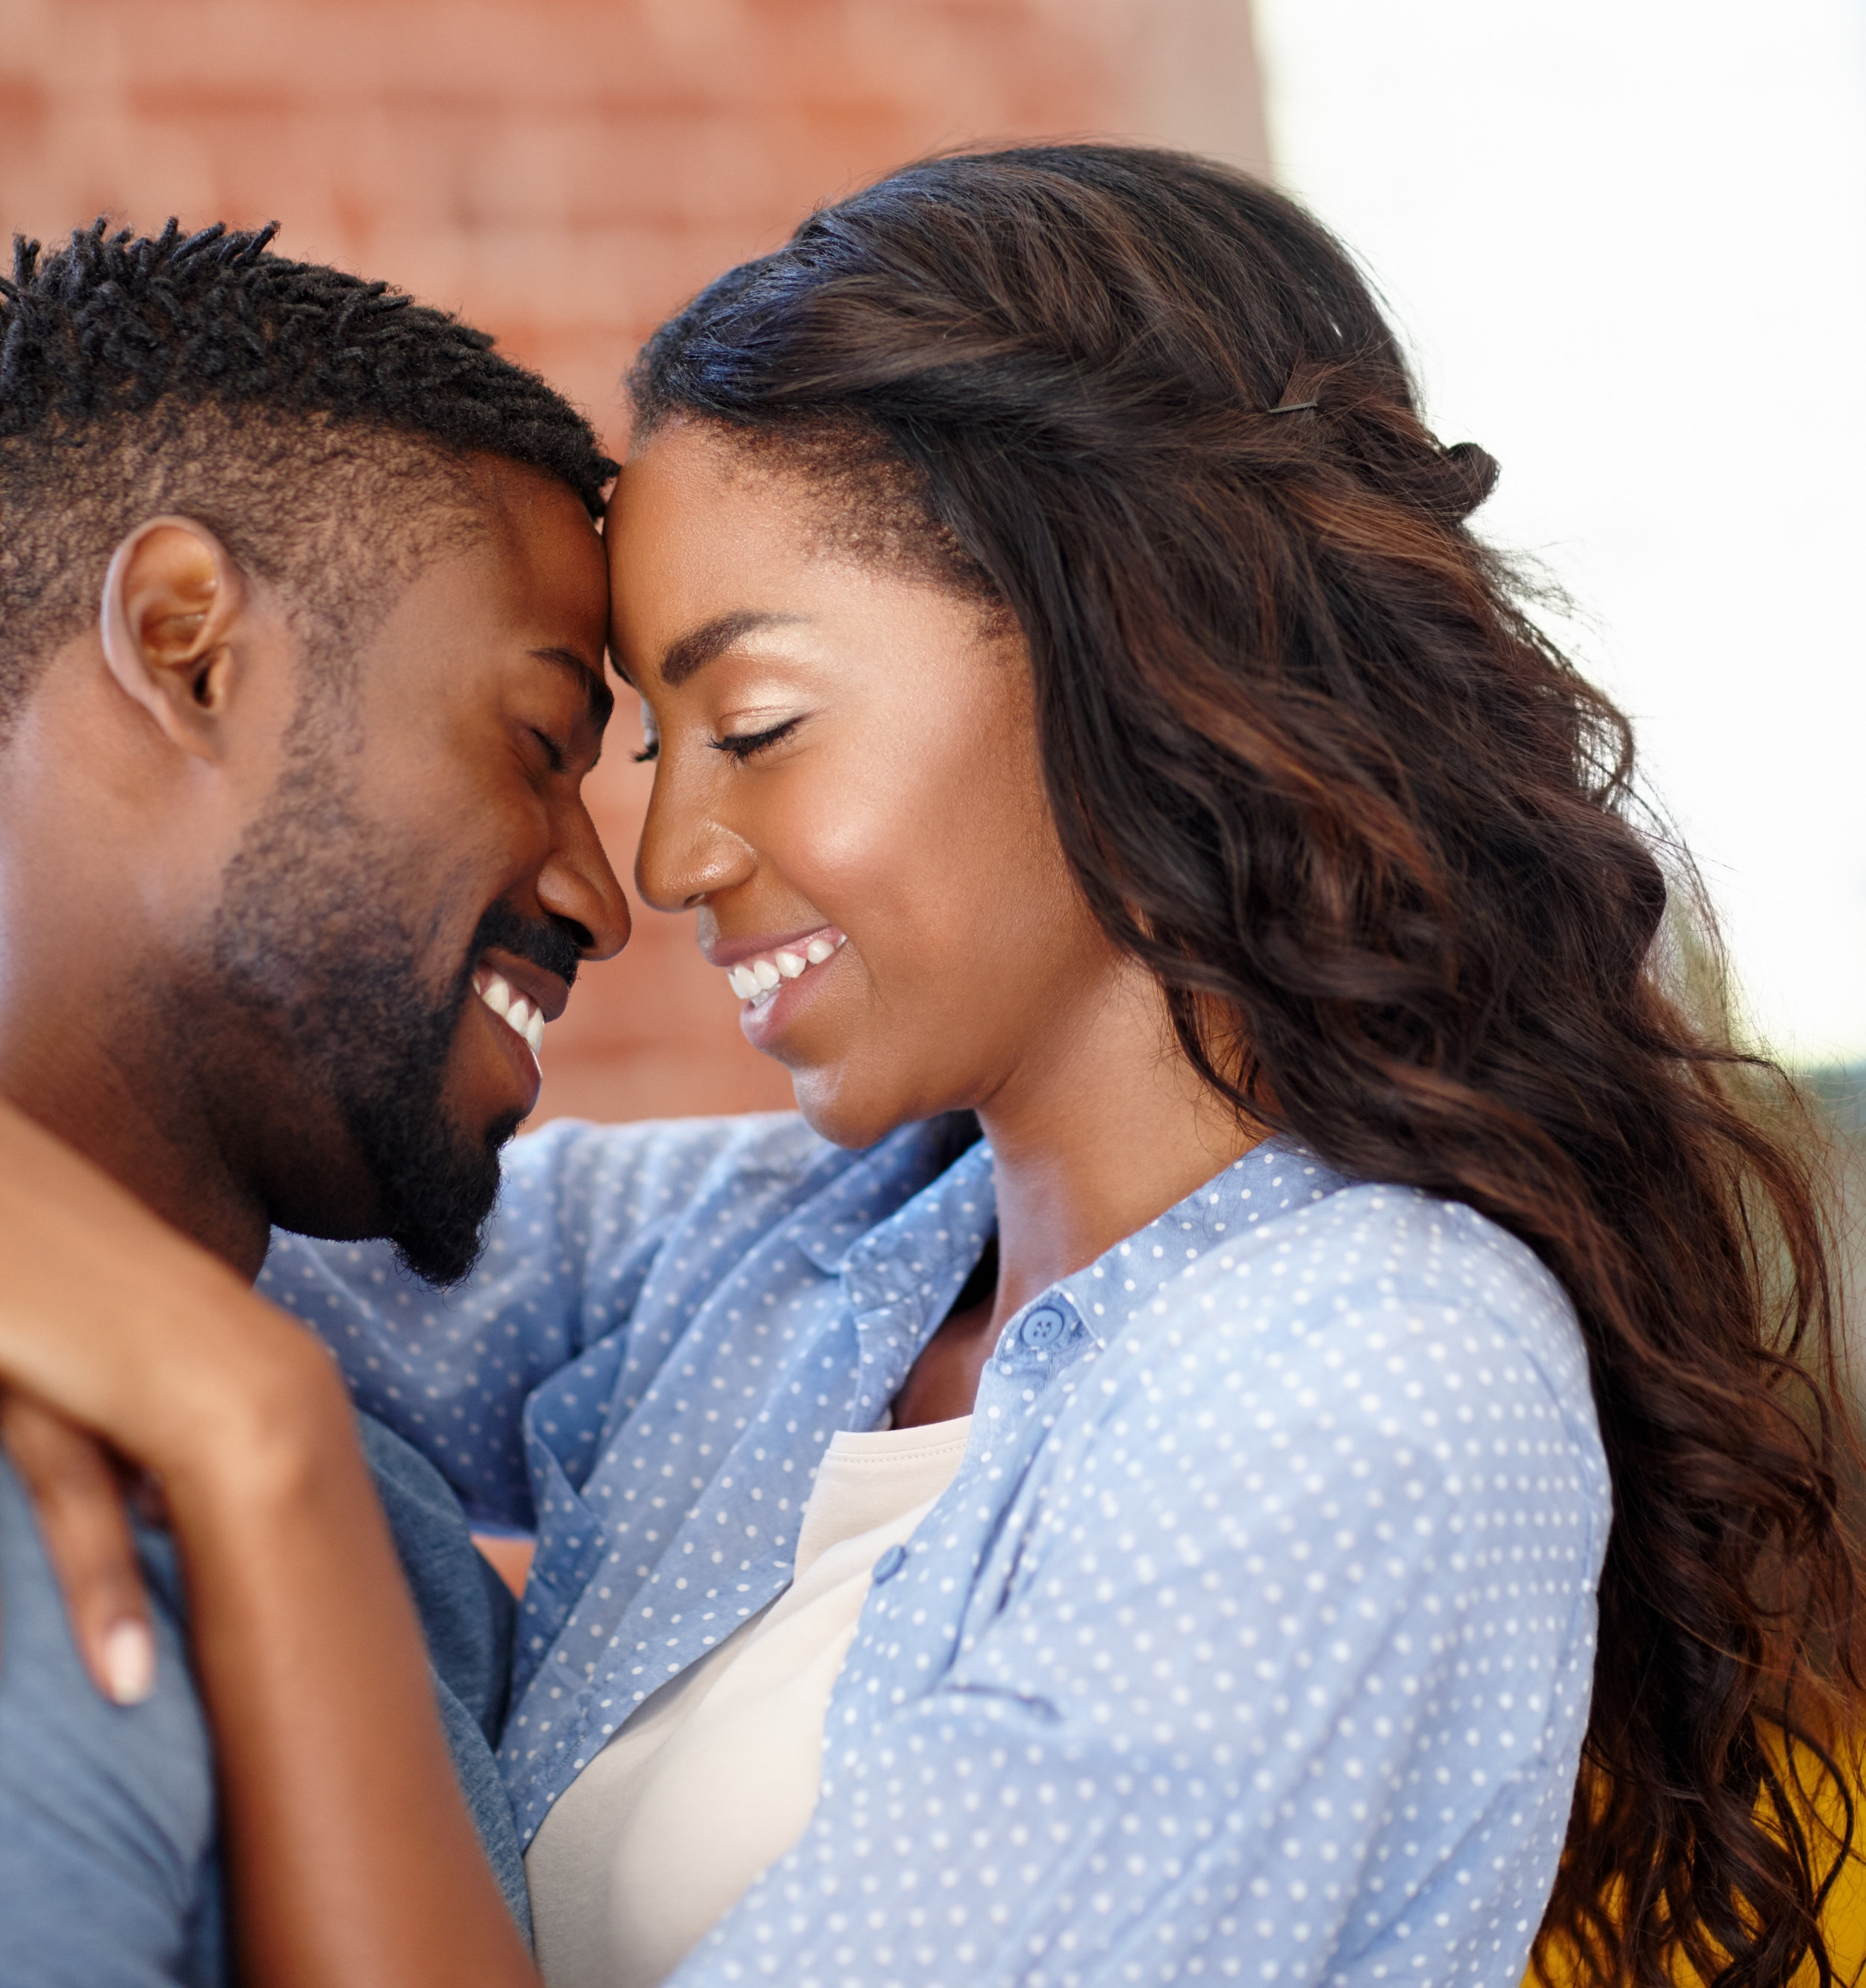 THE A, B, C OF INTIMACY IN MARRIAGE